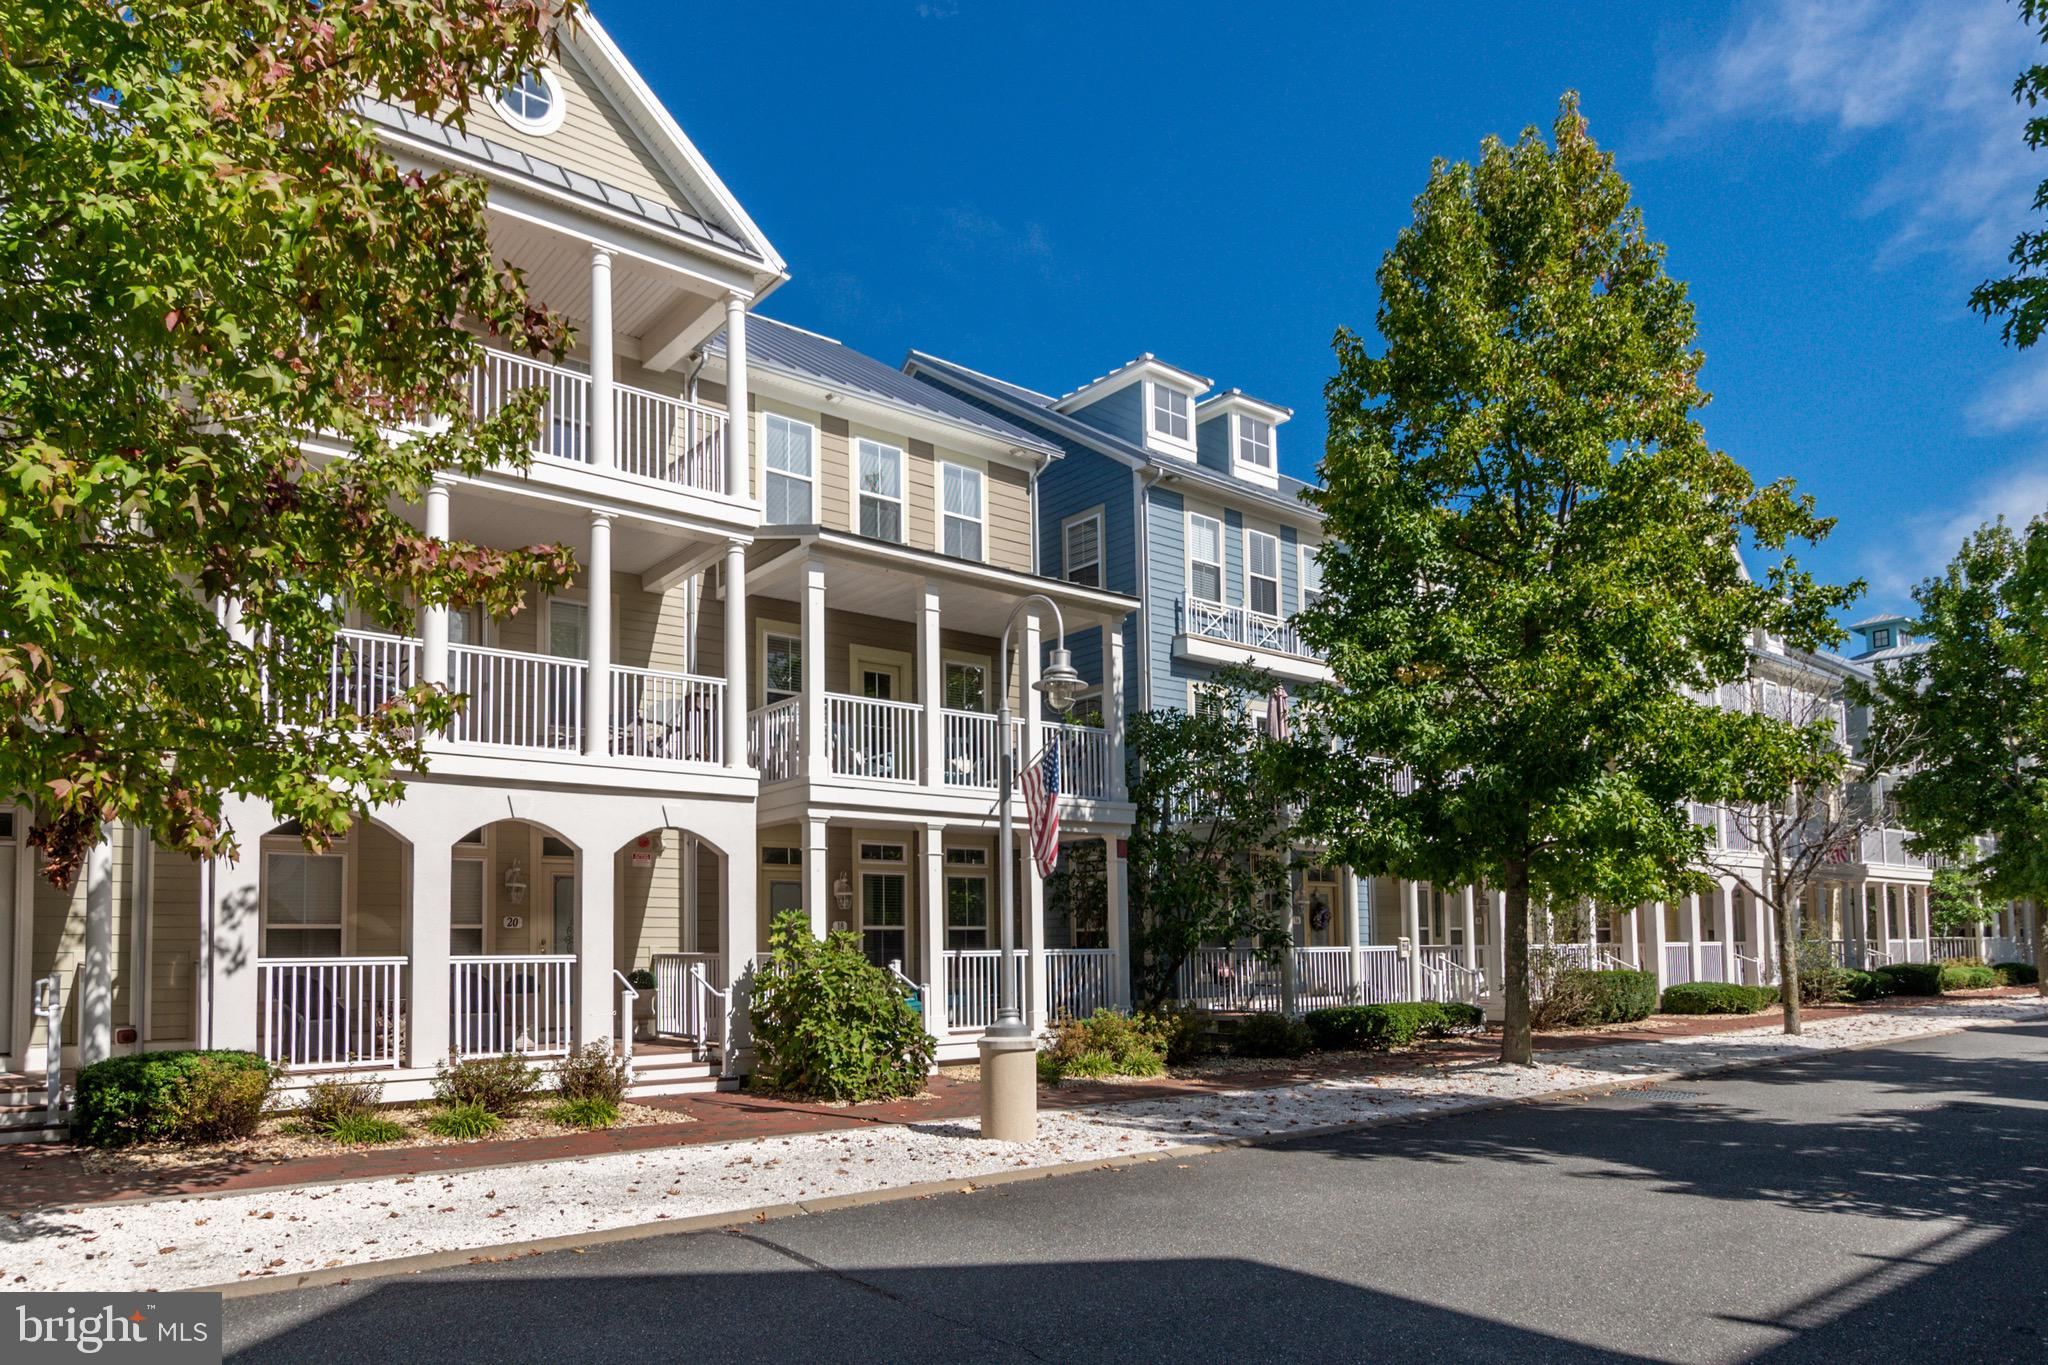 Located on a quiet tree lined street in beautiful Sunset Island this end of group townhouse is beautifully decorated, never been rented & sold fully furnished! Features include covered front porches, updated flooring, freshly painted and country eat-in kitchen w/ island. Just steps to the indoor and outdoor pools, fitness center, clubhouse, private beaches, interactive fountain and much more! This town home offers a large morning room right off the modern kitchen to enjoy with company. Features include solid surface counter tops, tile flooring, first floor den w/ potential to convert to a bedroom, private balconies, soaking tub in the master bath, open floor plan, and much more. The inviting & warm decor will leave you with the relaxed beach style of living all year round!